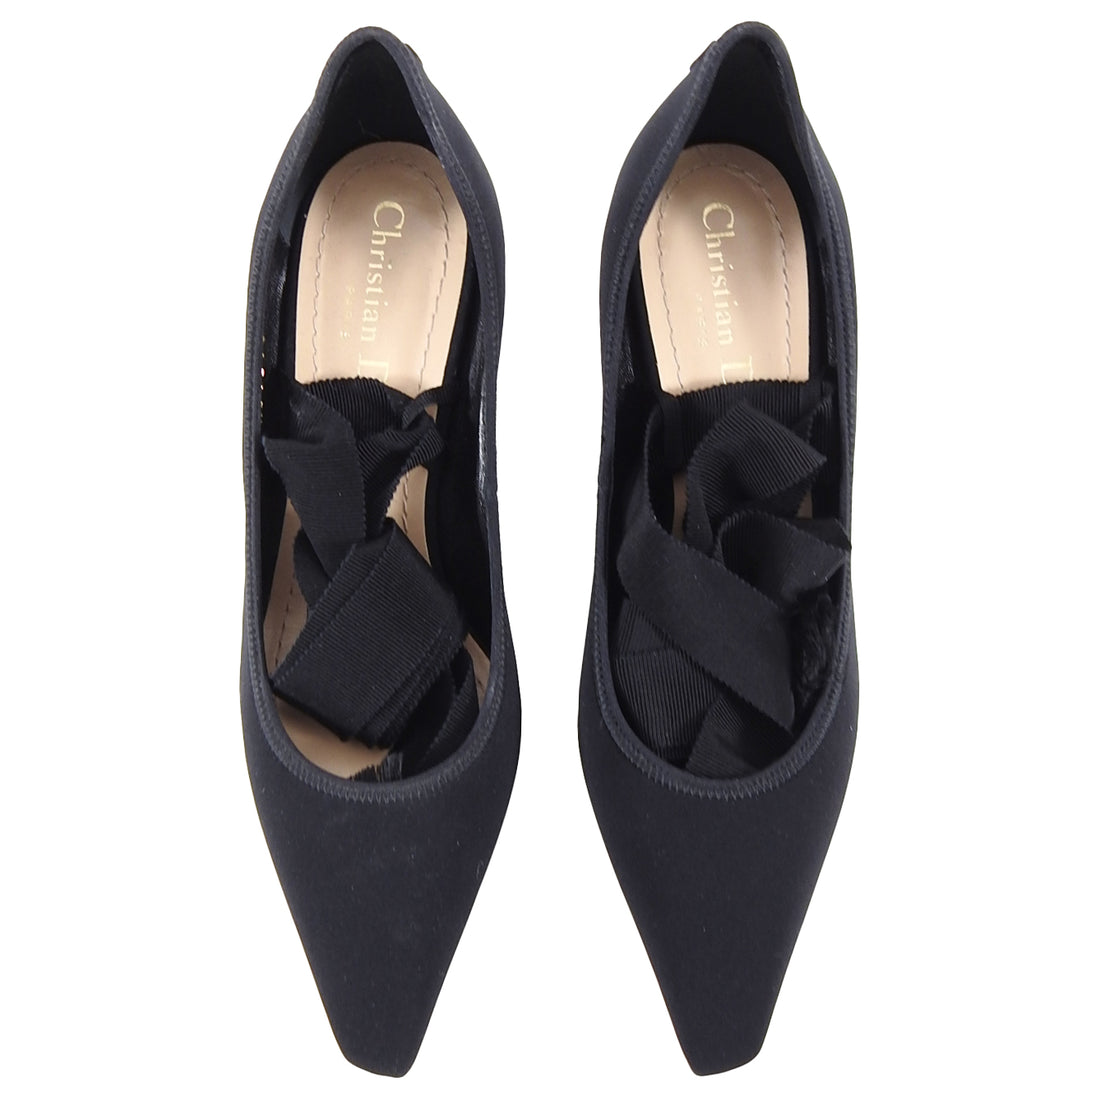 Dior Etoile Black Nylon Pumps with Acrylic Heel and Ribbon Wrap - USA 6